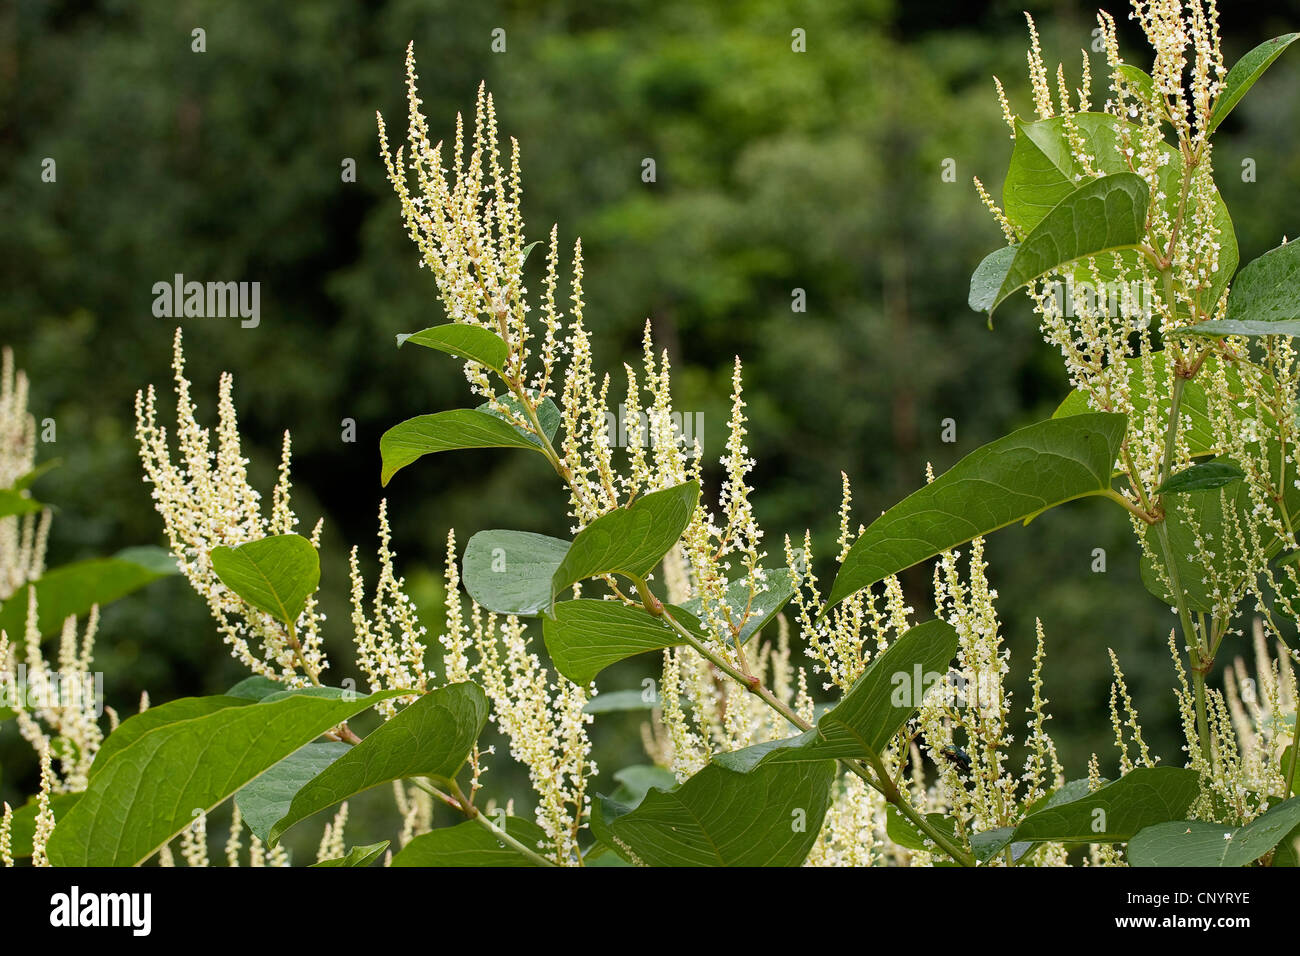 Japanese Knotweed (Fallopia japonica, Reynoutria japonica), blooming, Germany Stock Photo